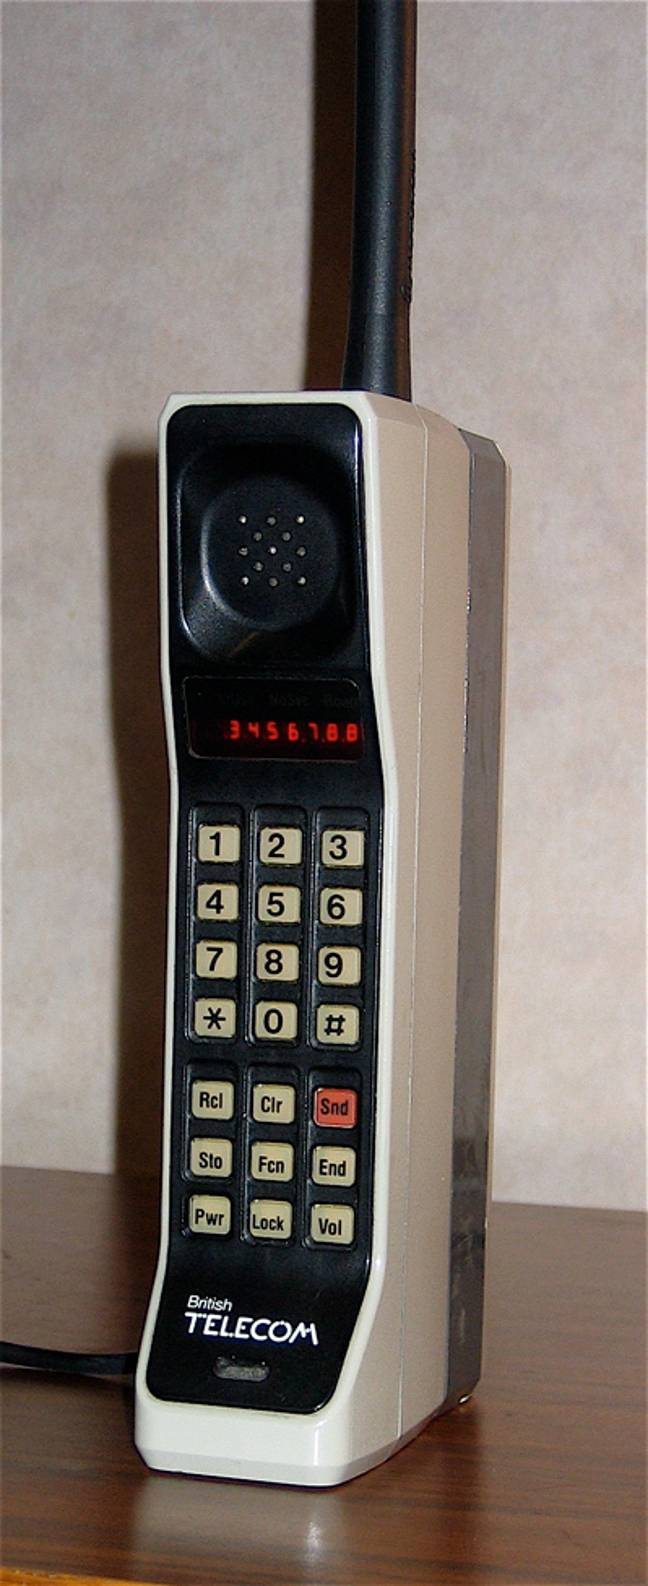 The iconic Motorola DynaTAC 8000X from 1984 could be worth up to £3,500. Credit: Wikimedia Commons/Redrum0486